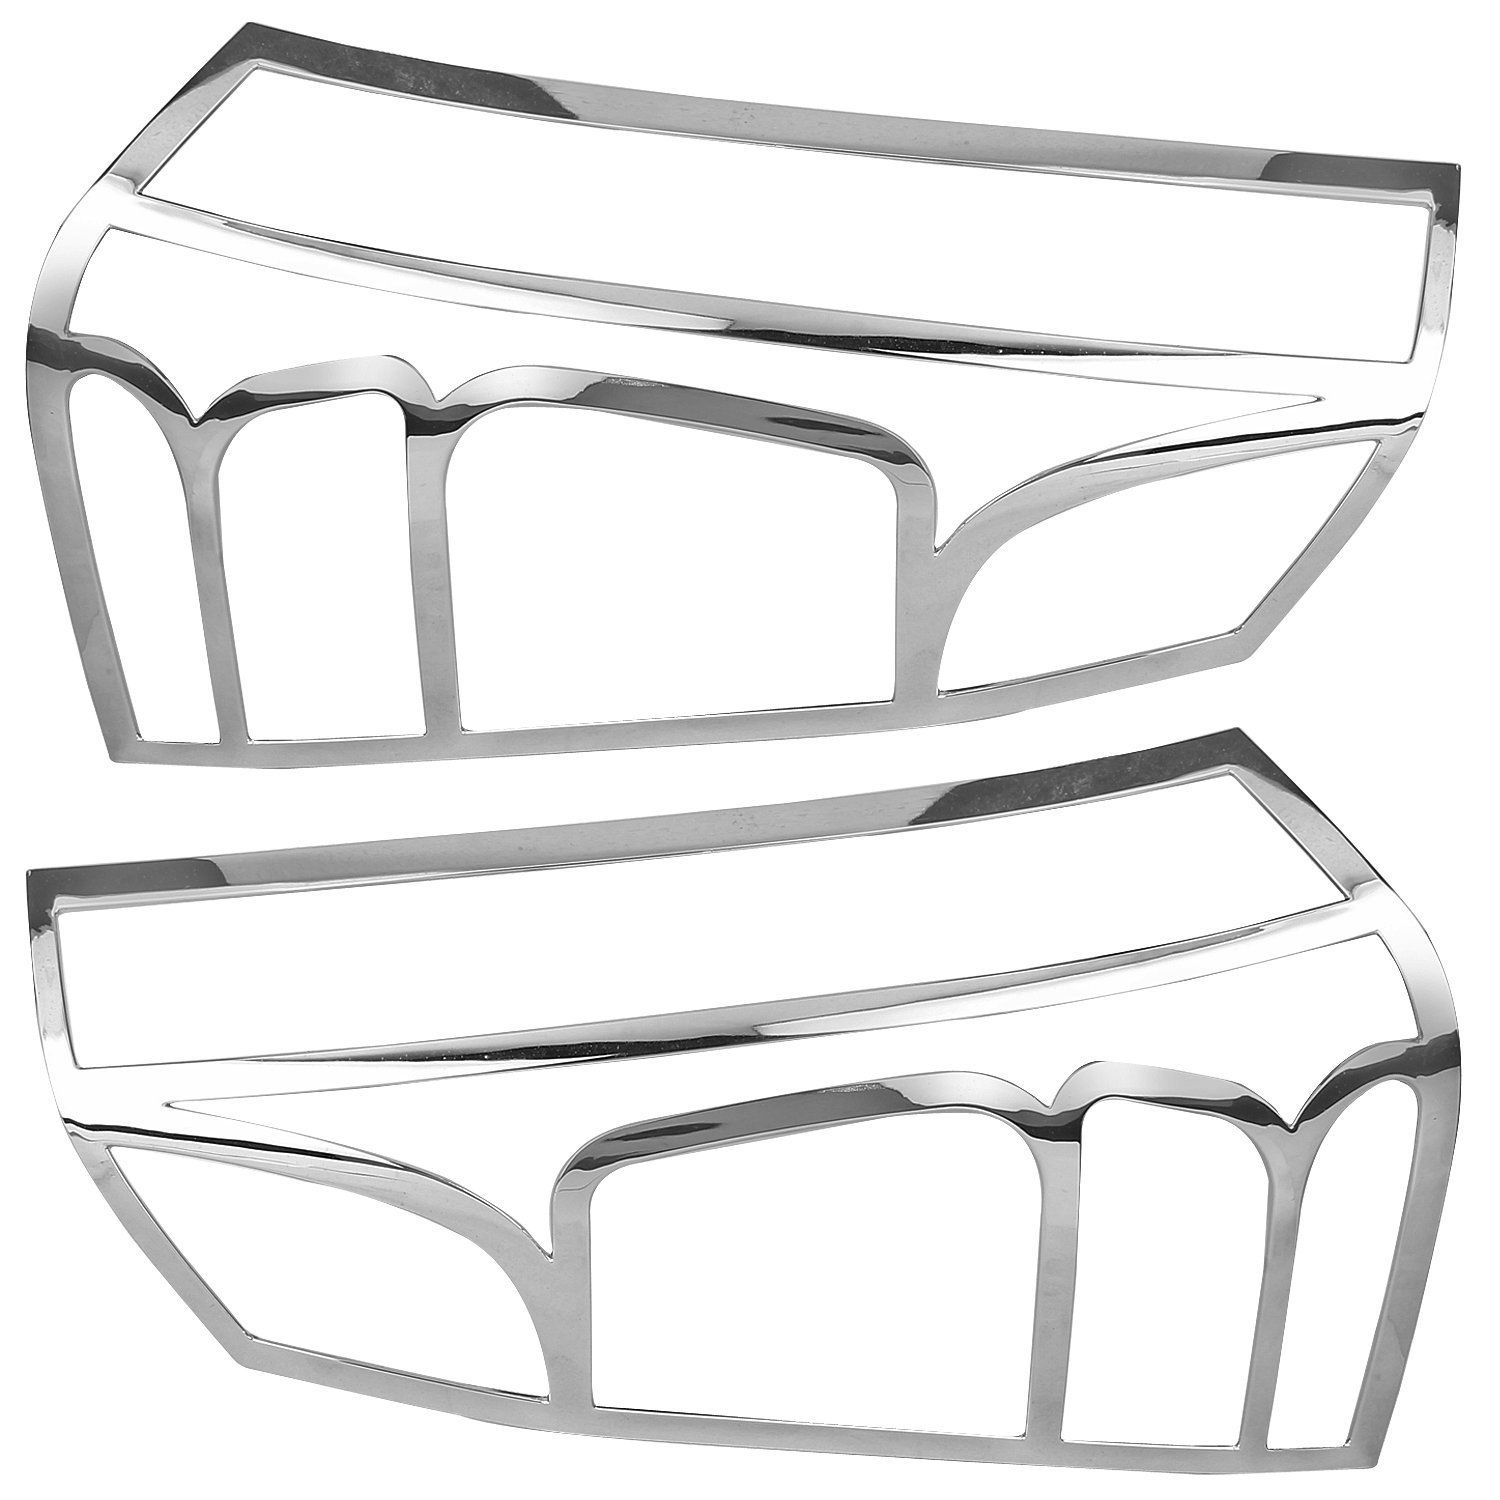 TAIL LAMP MOULDINGS FOR MARUTI WAGON R TYPE III (SET OF 2PCS)